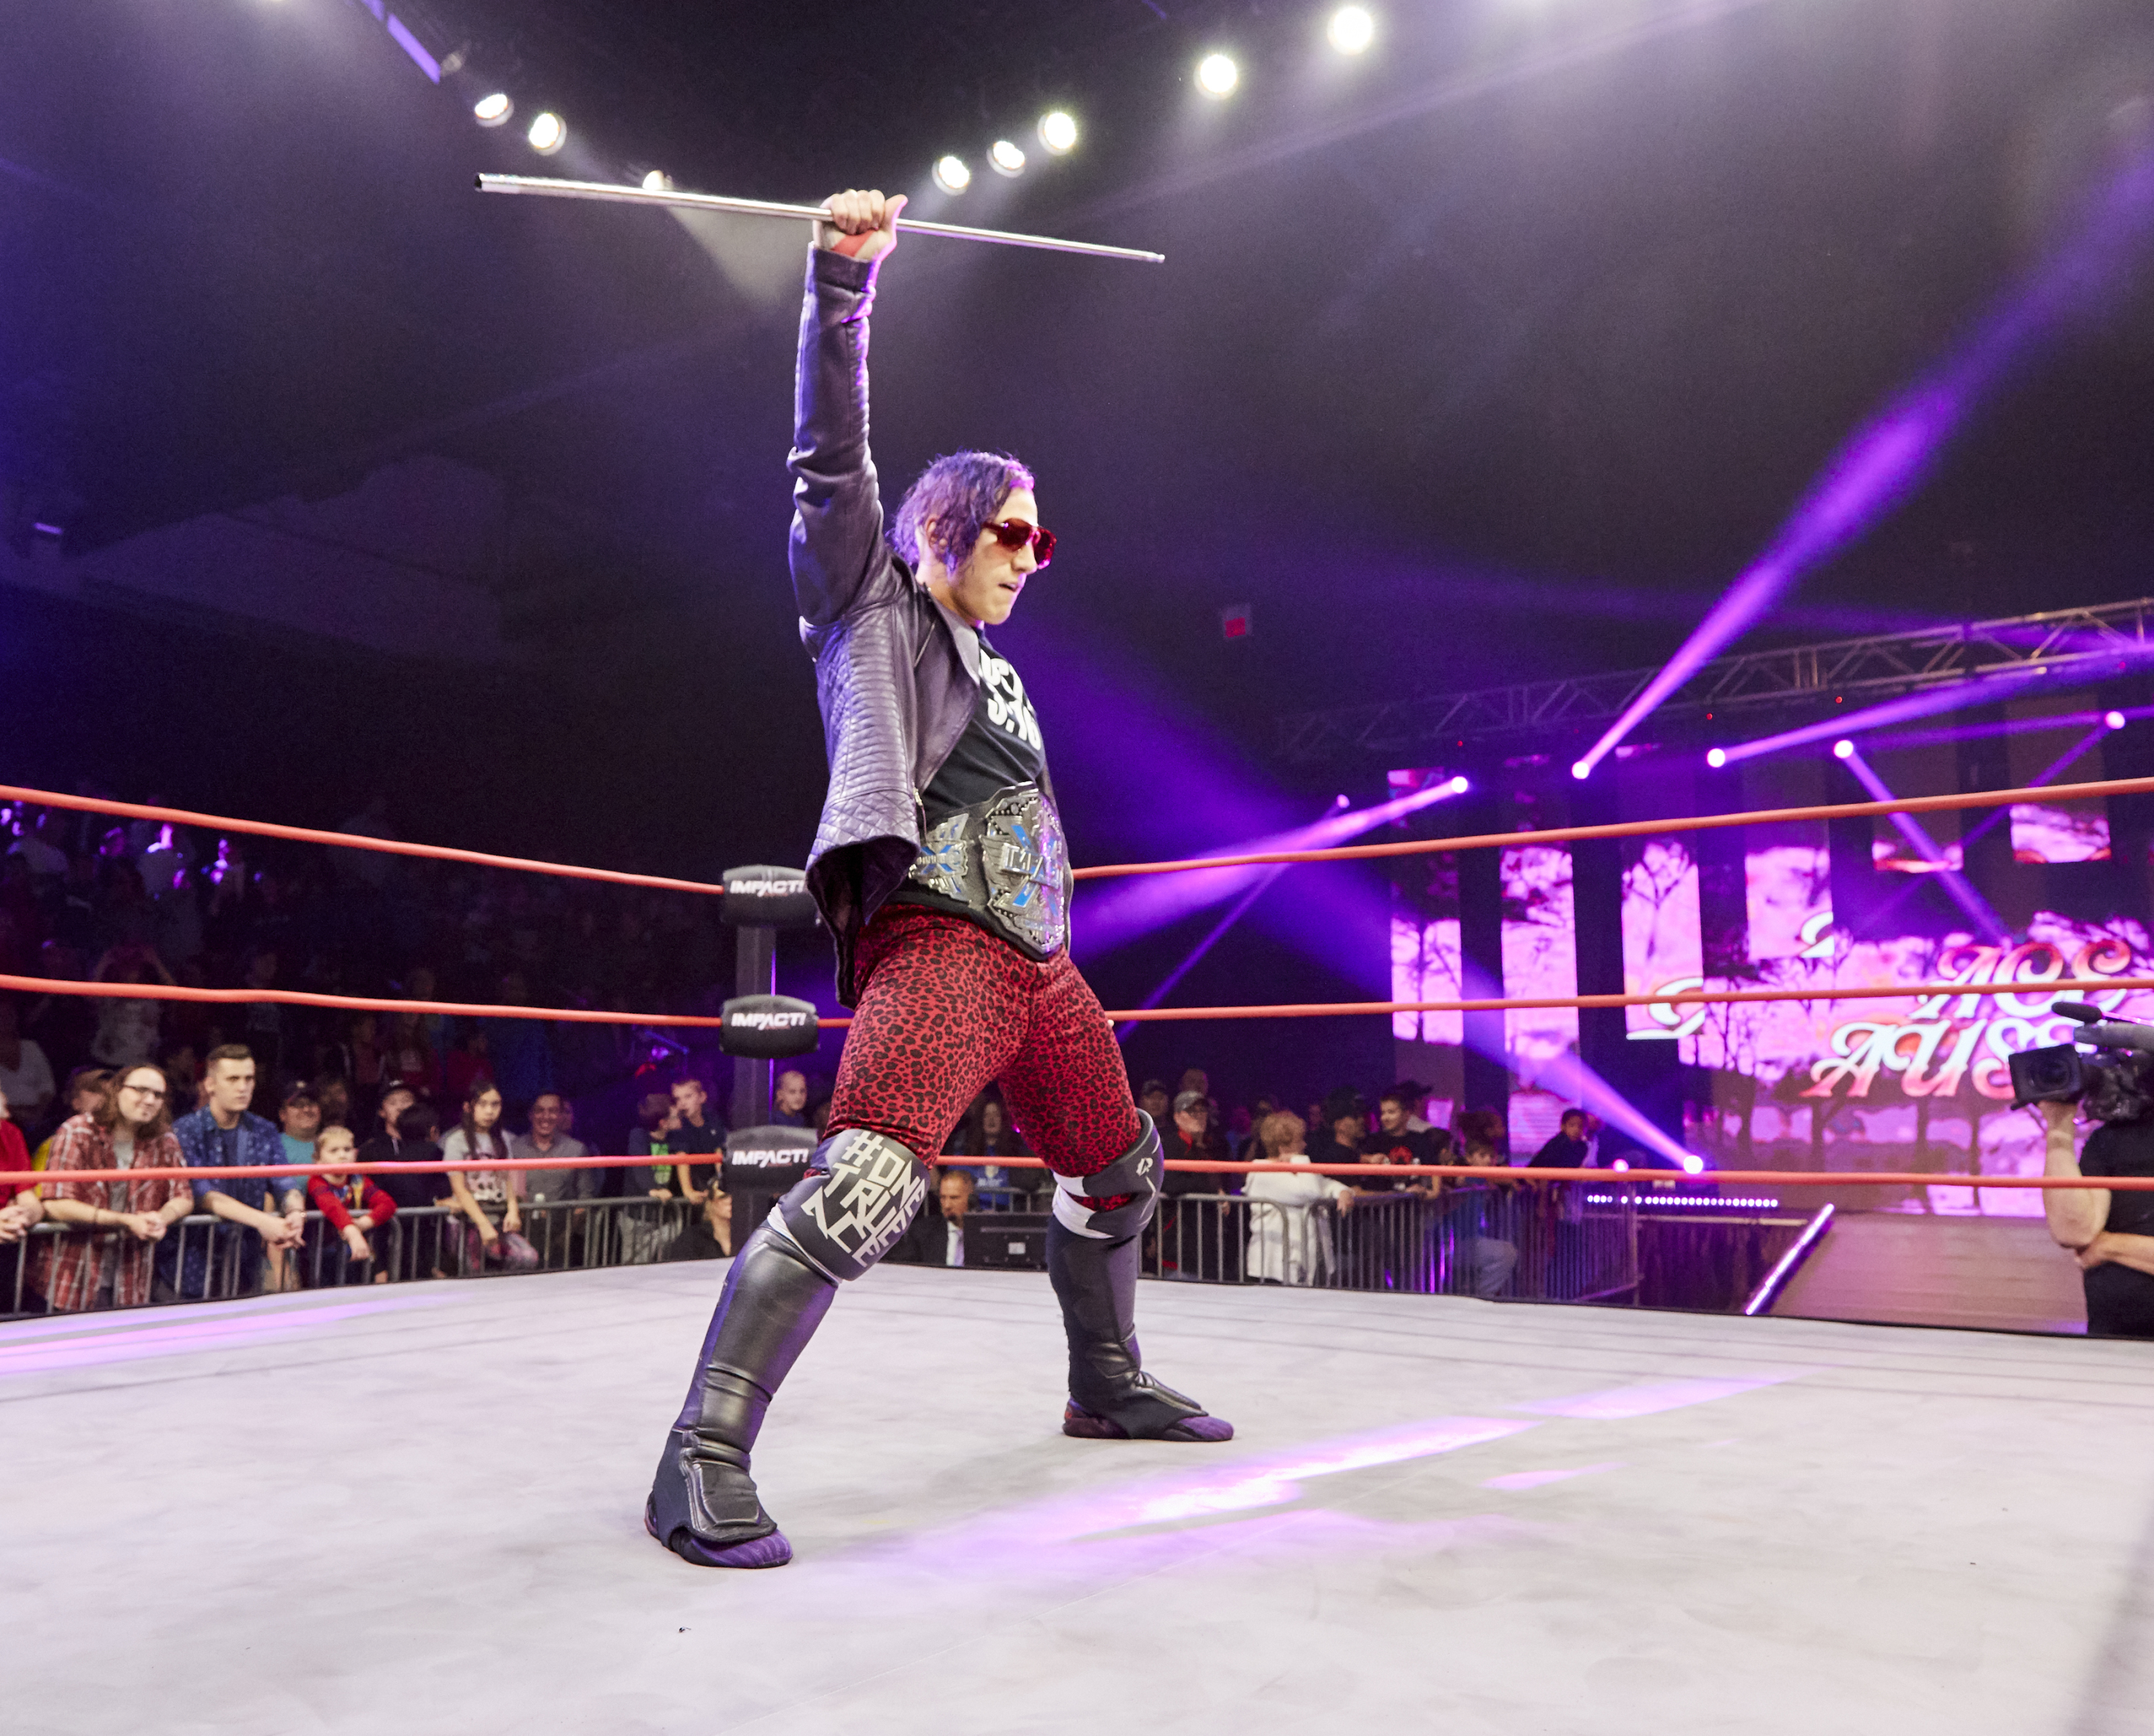 Why Impact Wrestling's main event scene is thriving so far in 2020